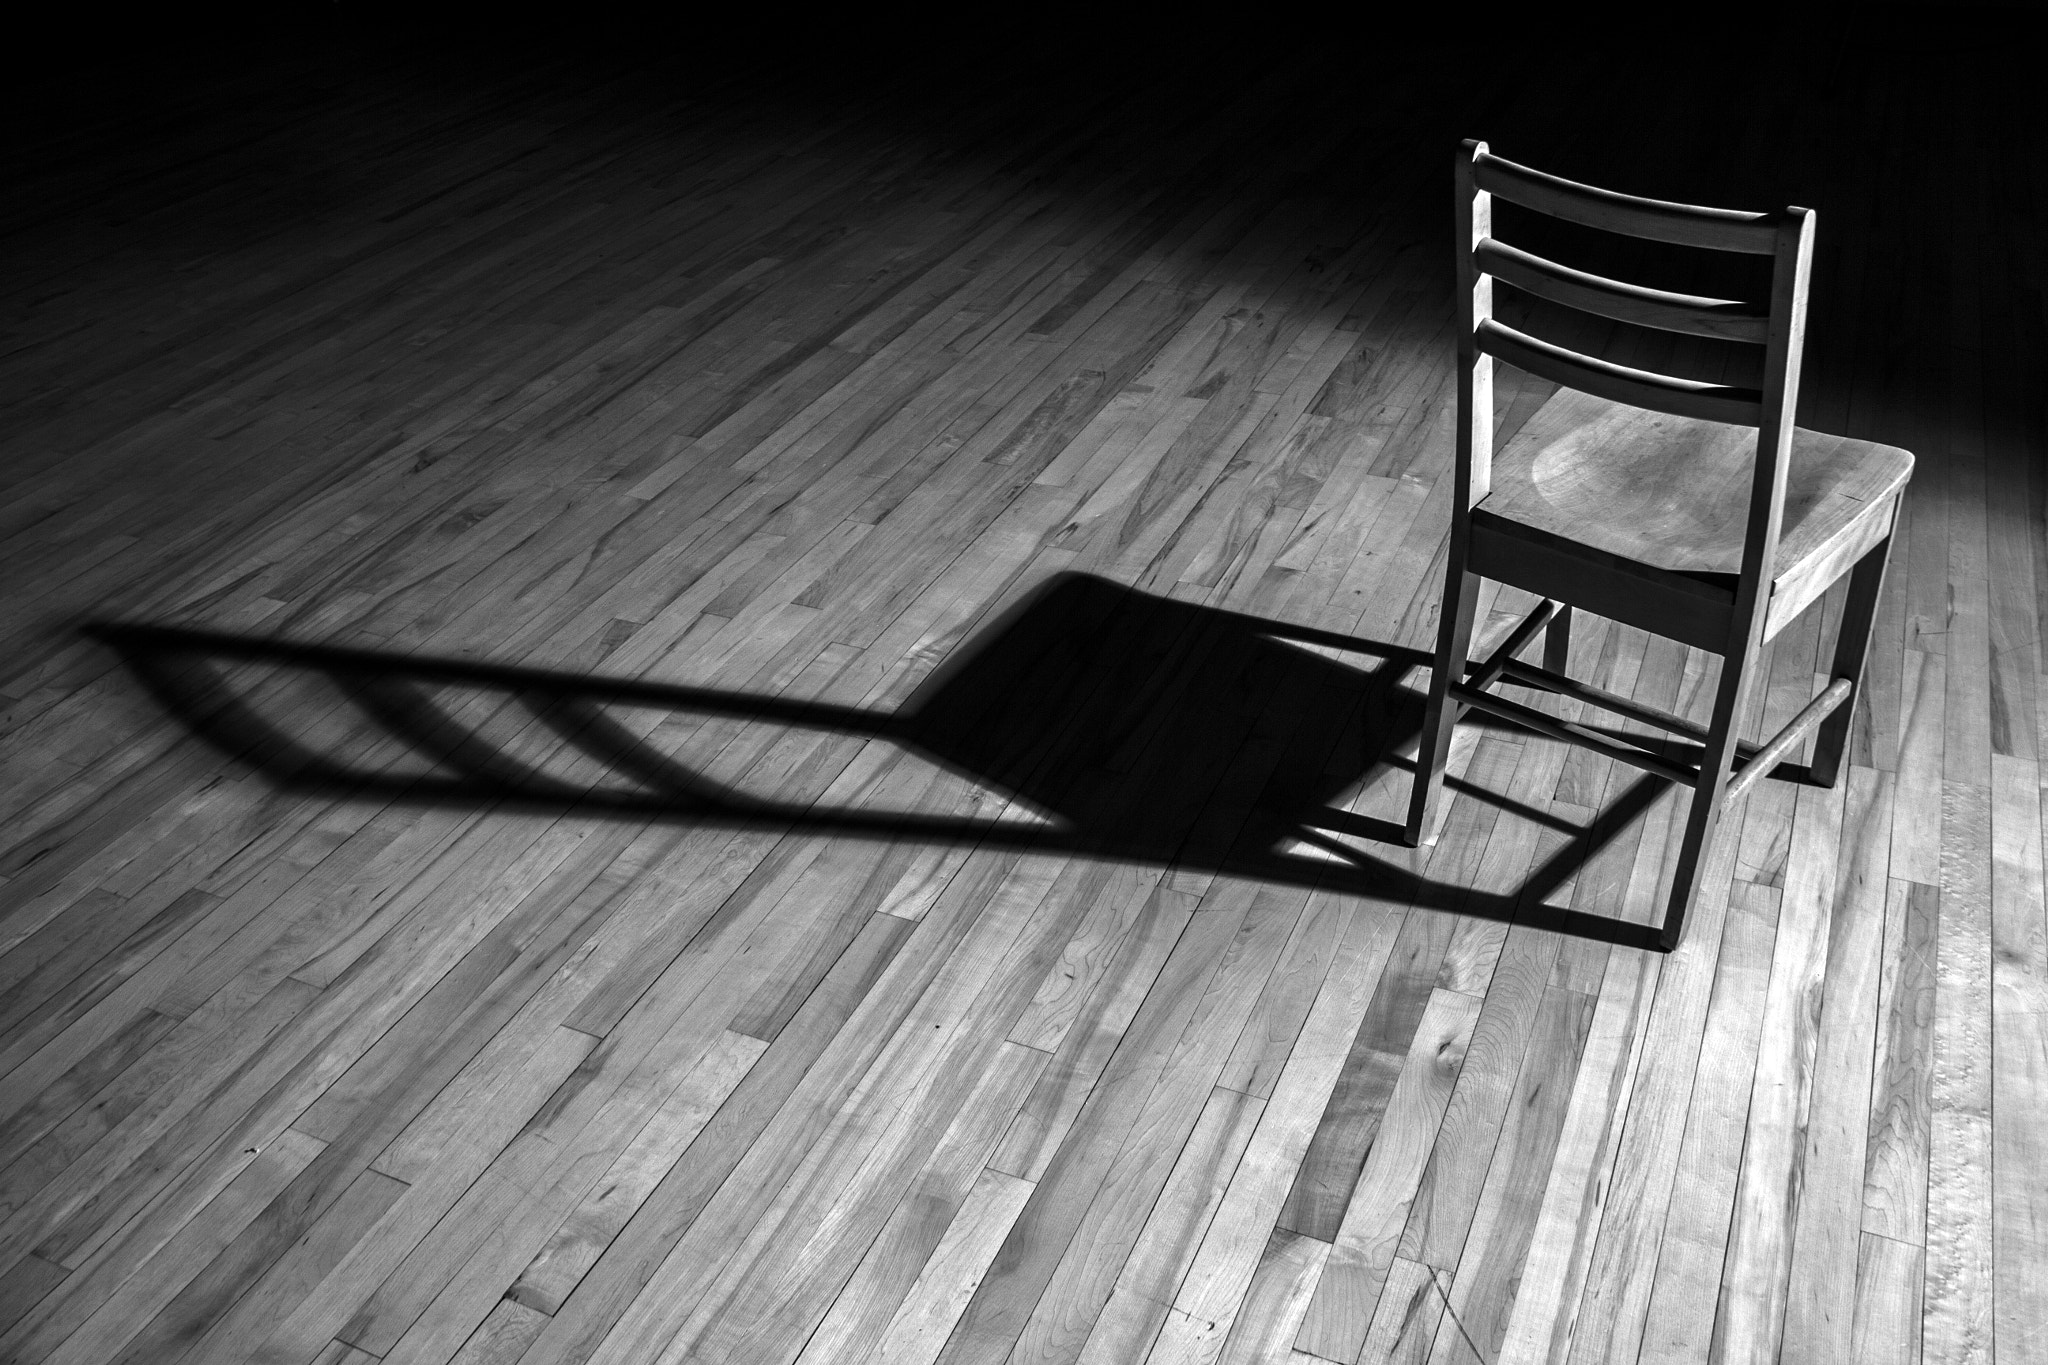 Photograph Lonely Chair by Eric Gagnon on 500px